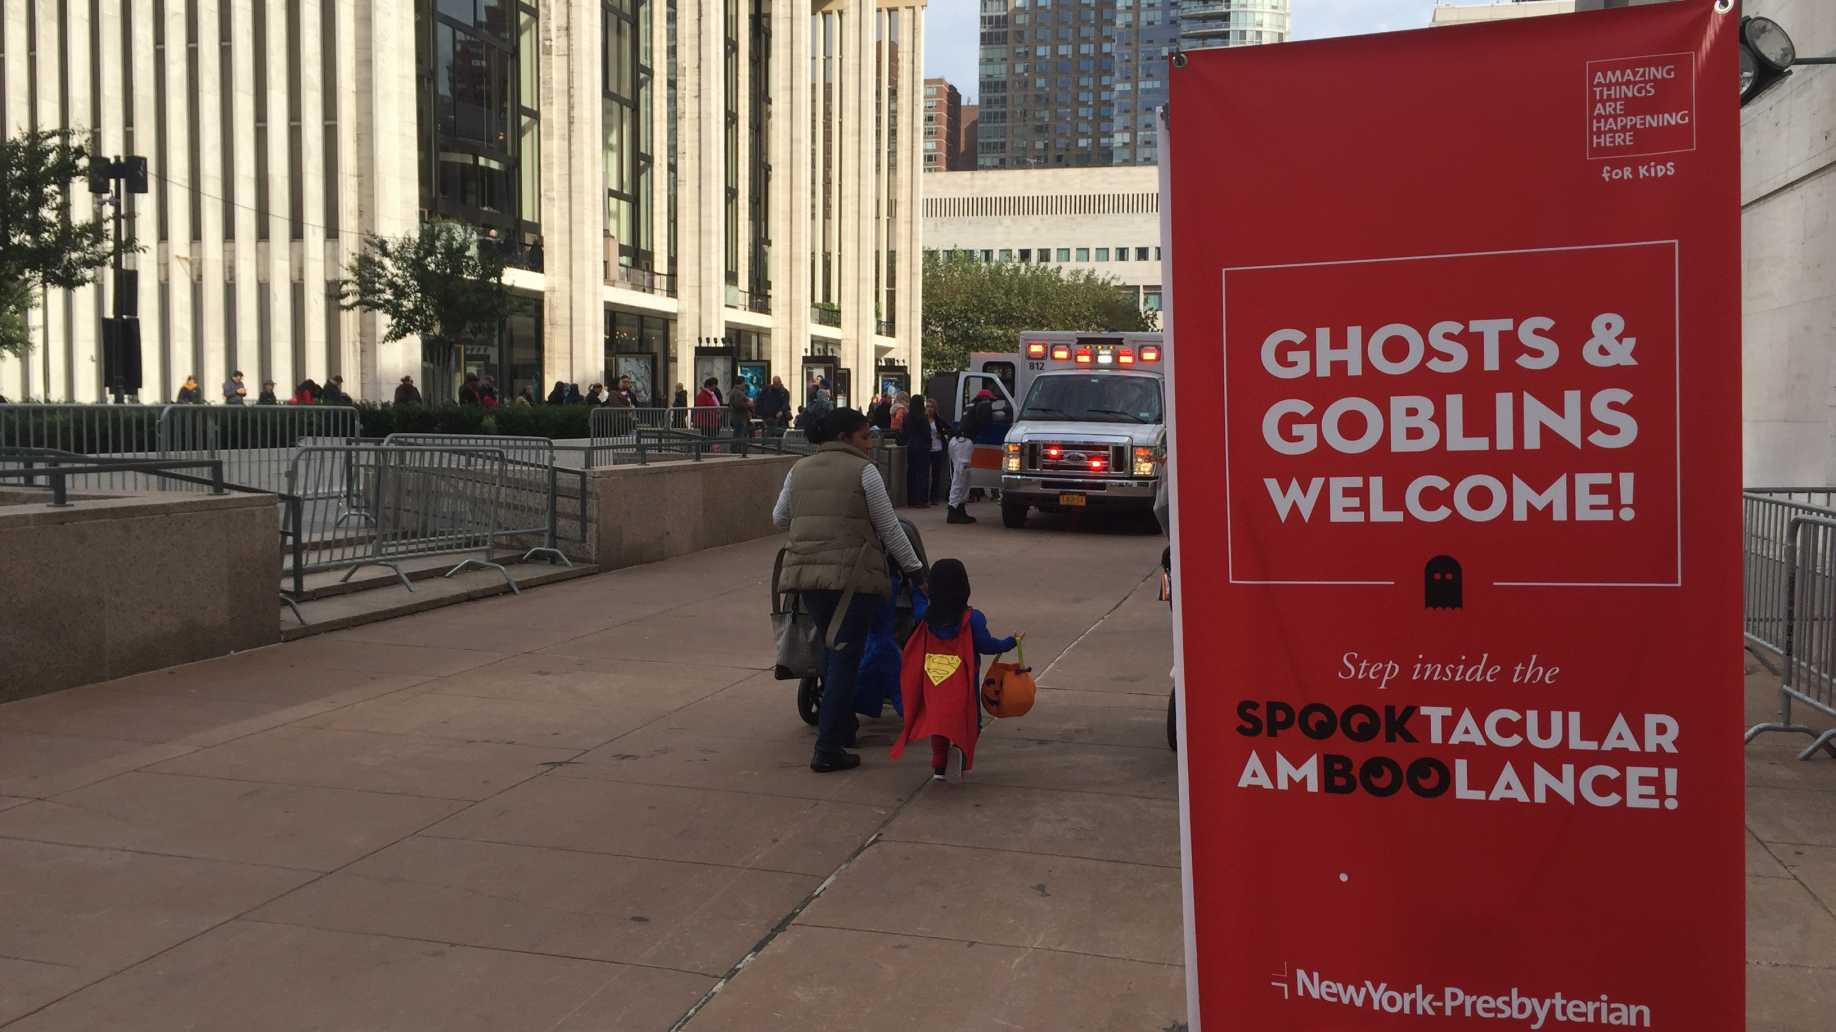 NewYork-Presbyterian hosts spooky ambulance tour during LC Kids Trick-or-Treat event